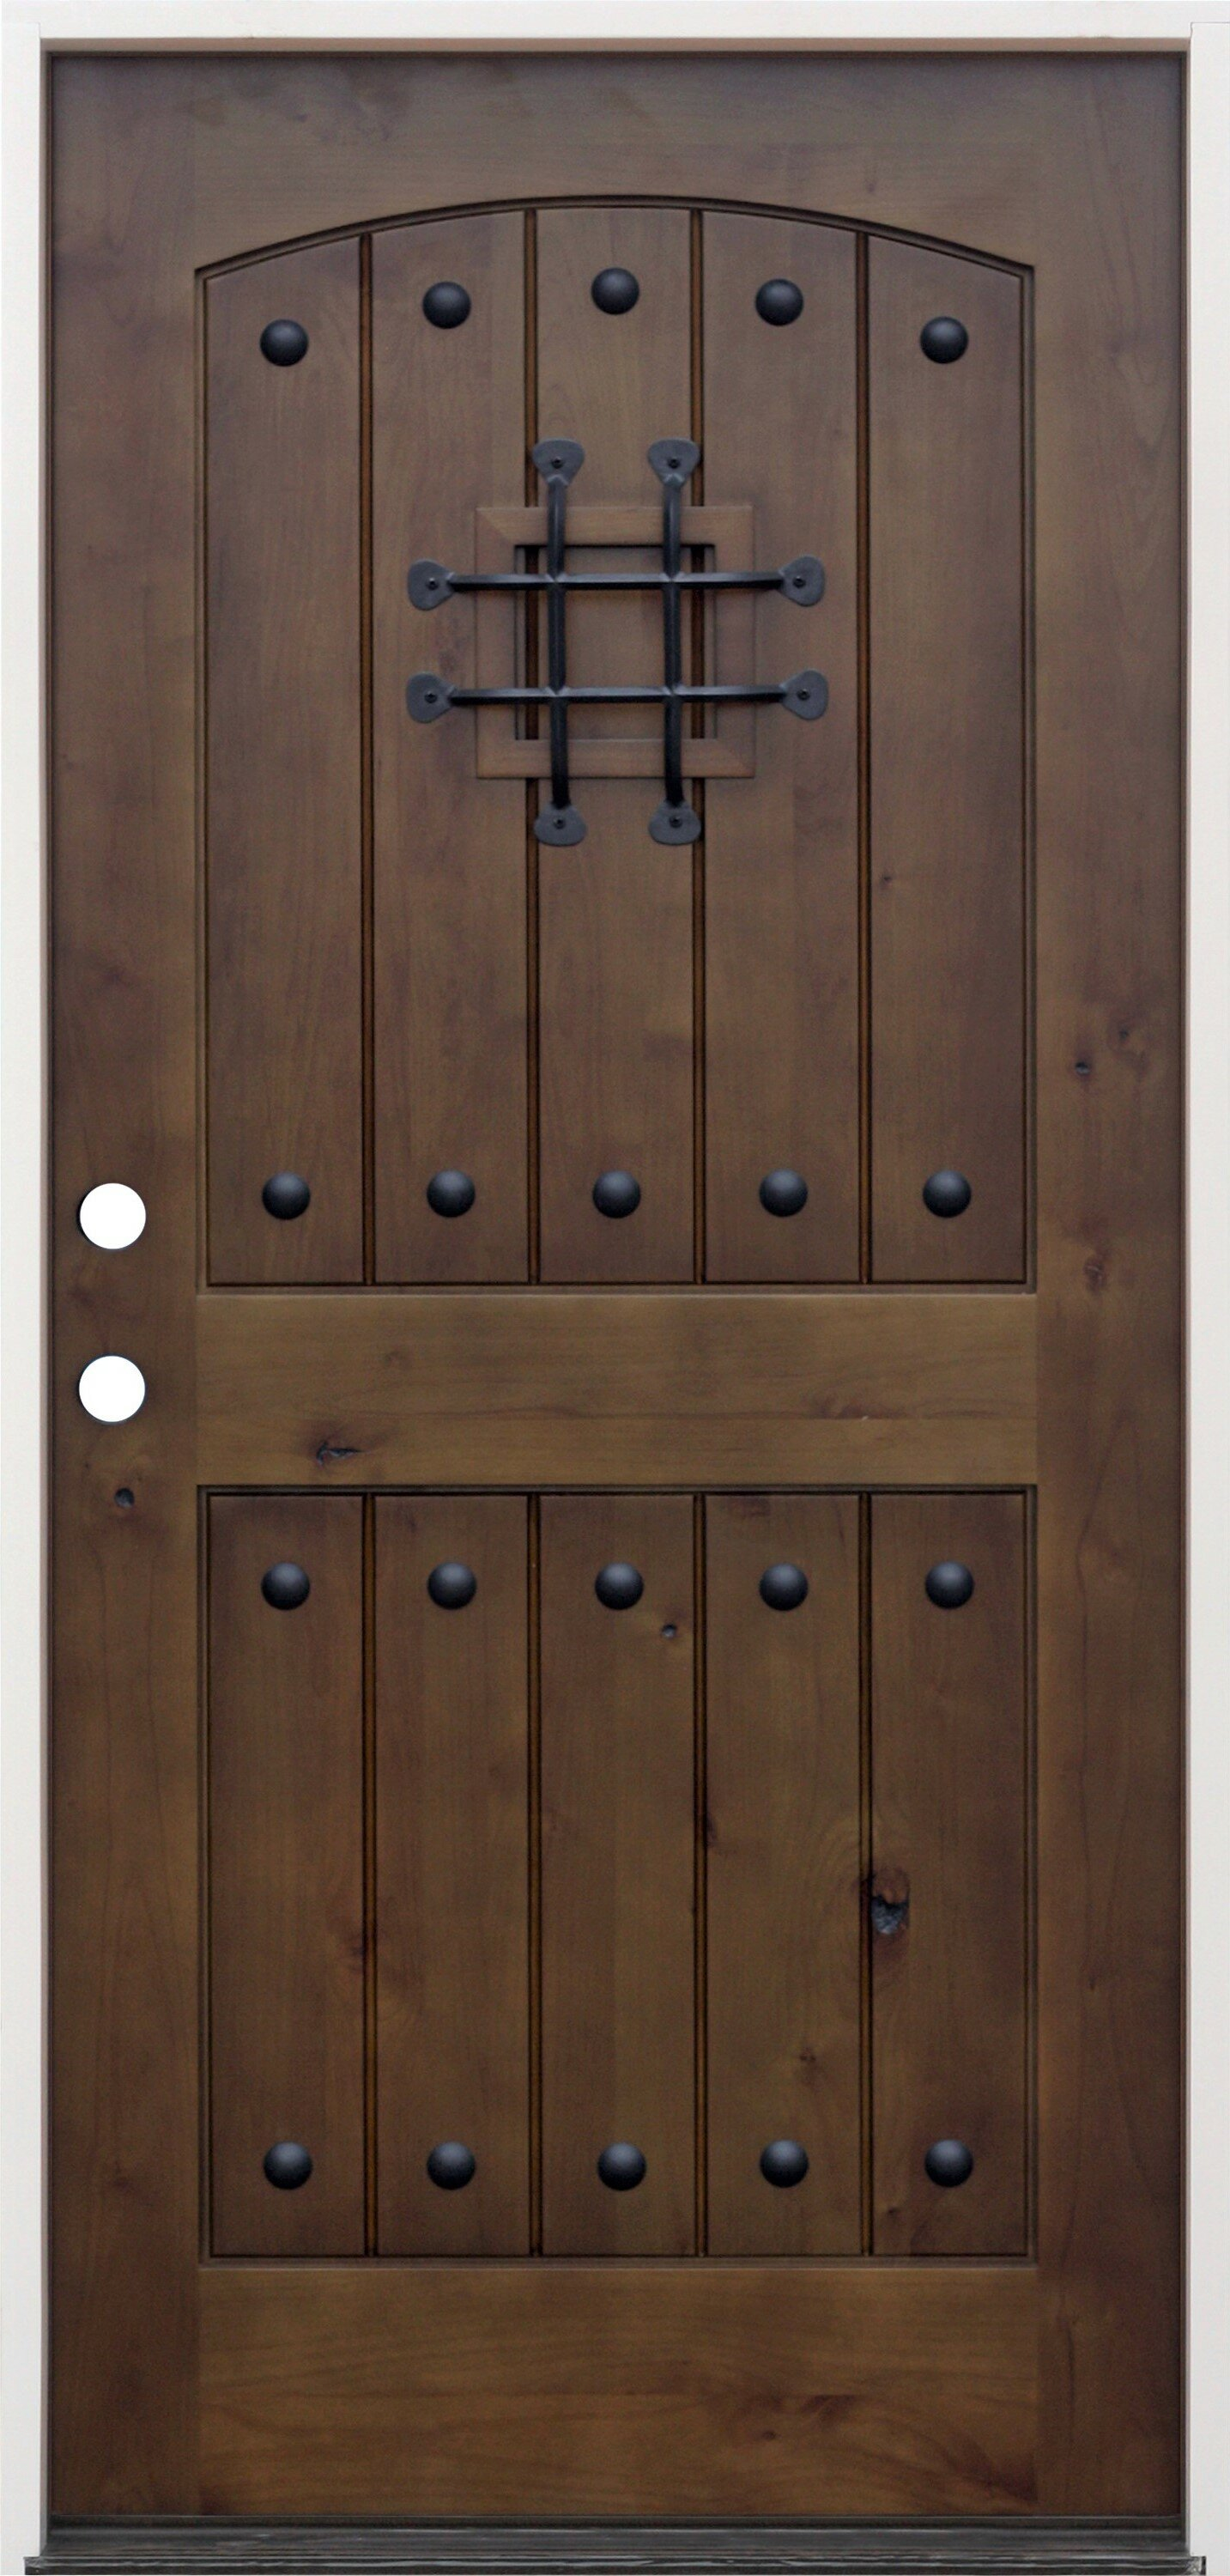 CreativeEntryways Rustic 2-Panel V-Groove Ready to Install Wood Prehung Front Entry Door | Wayfair & CreativeEntryways Rustic 2-Panel V-Groove Ready to Install Wood ...